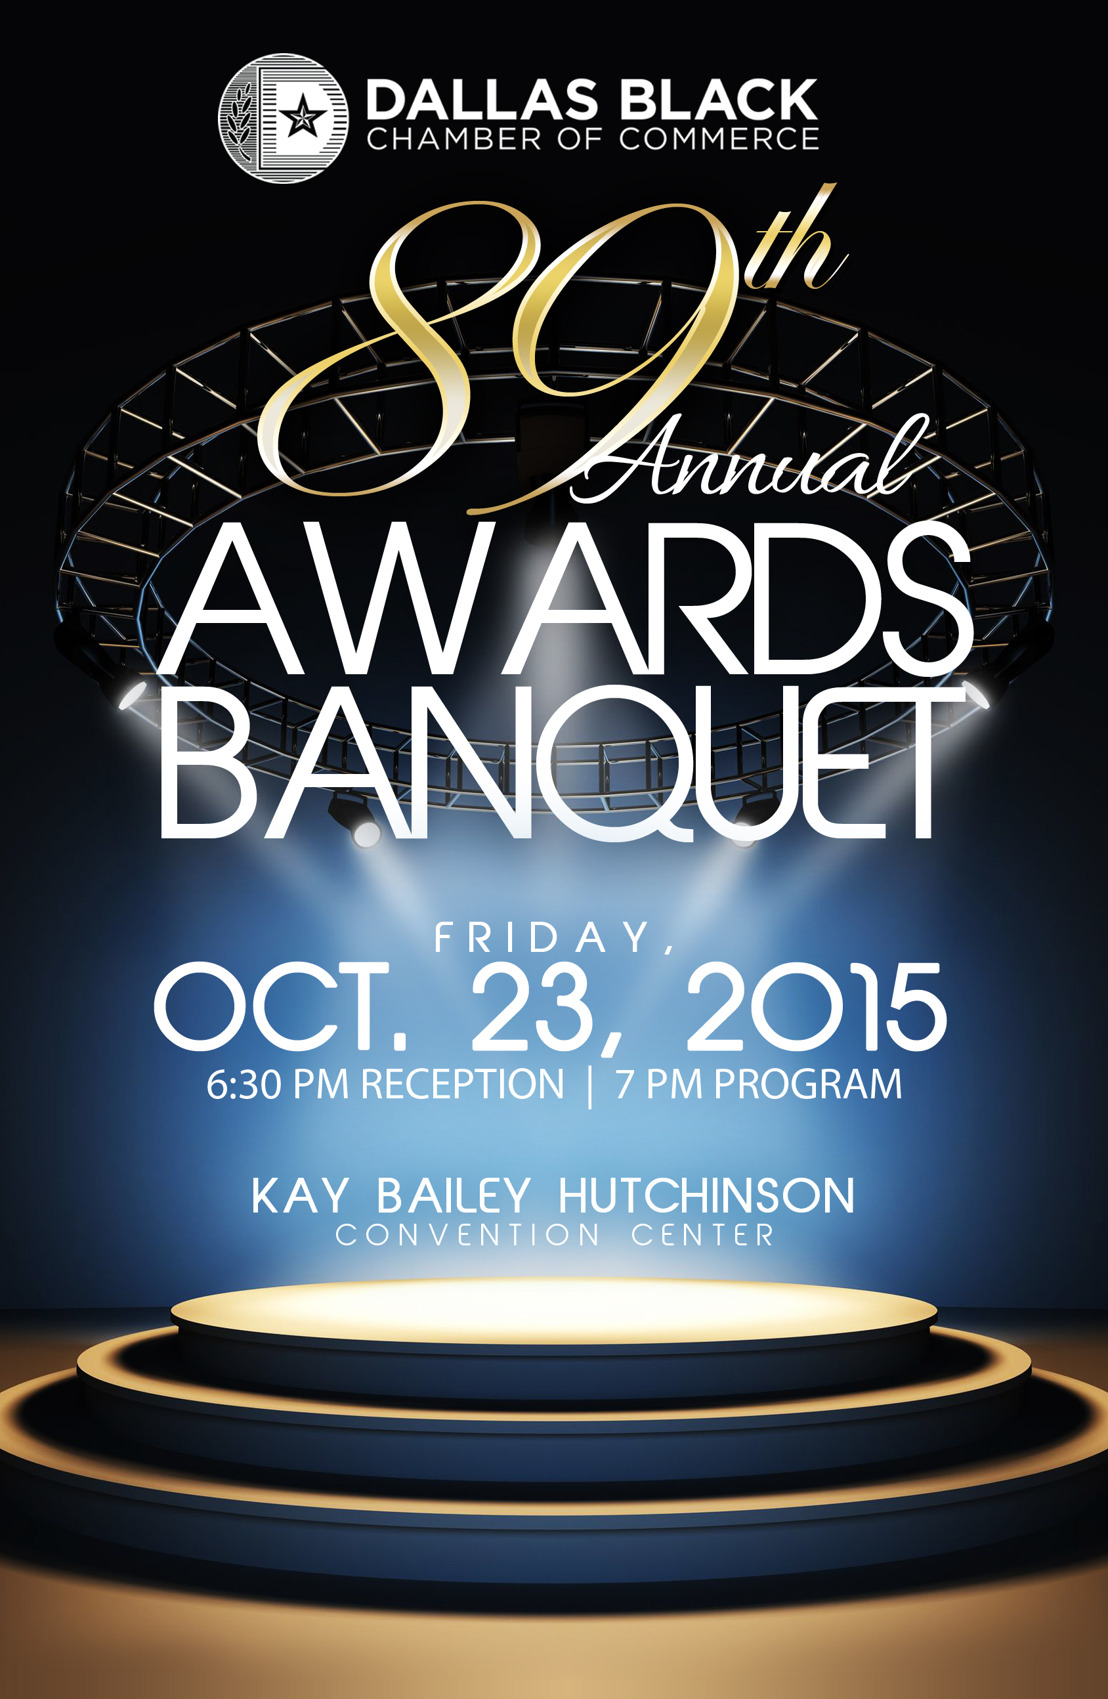 Dallas Black Chamber of Commerce Host the 89th Annual Awards Banquet